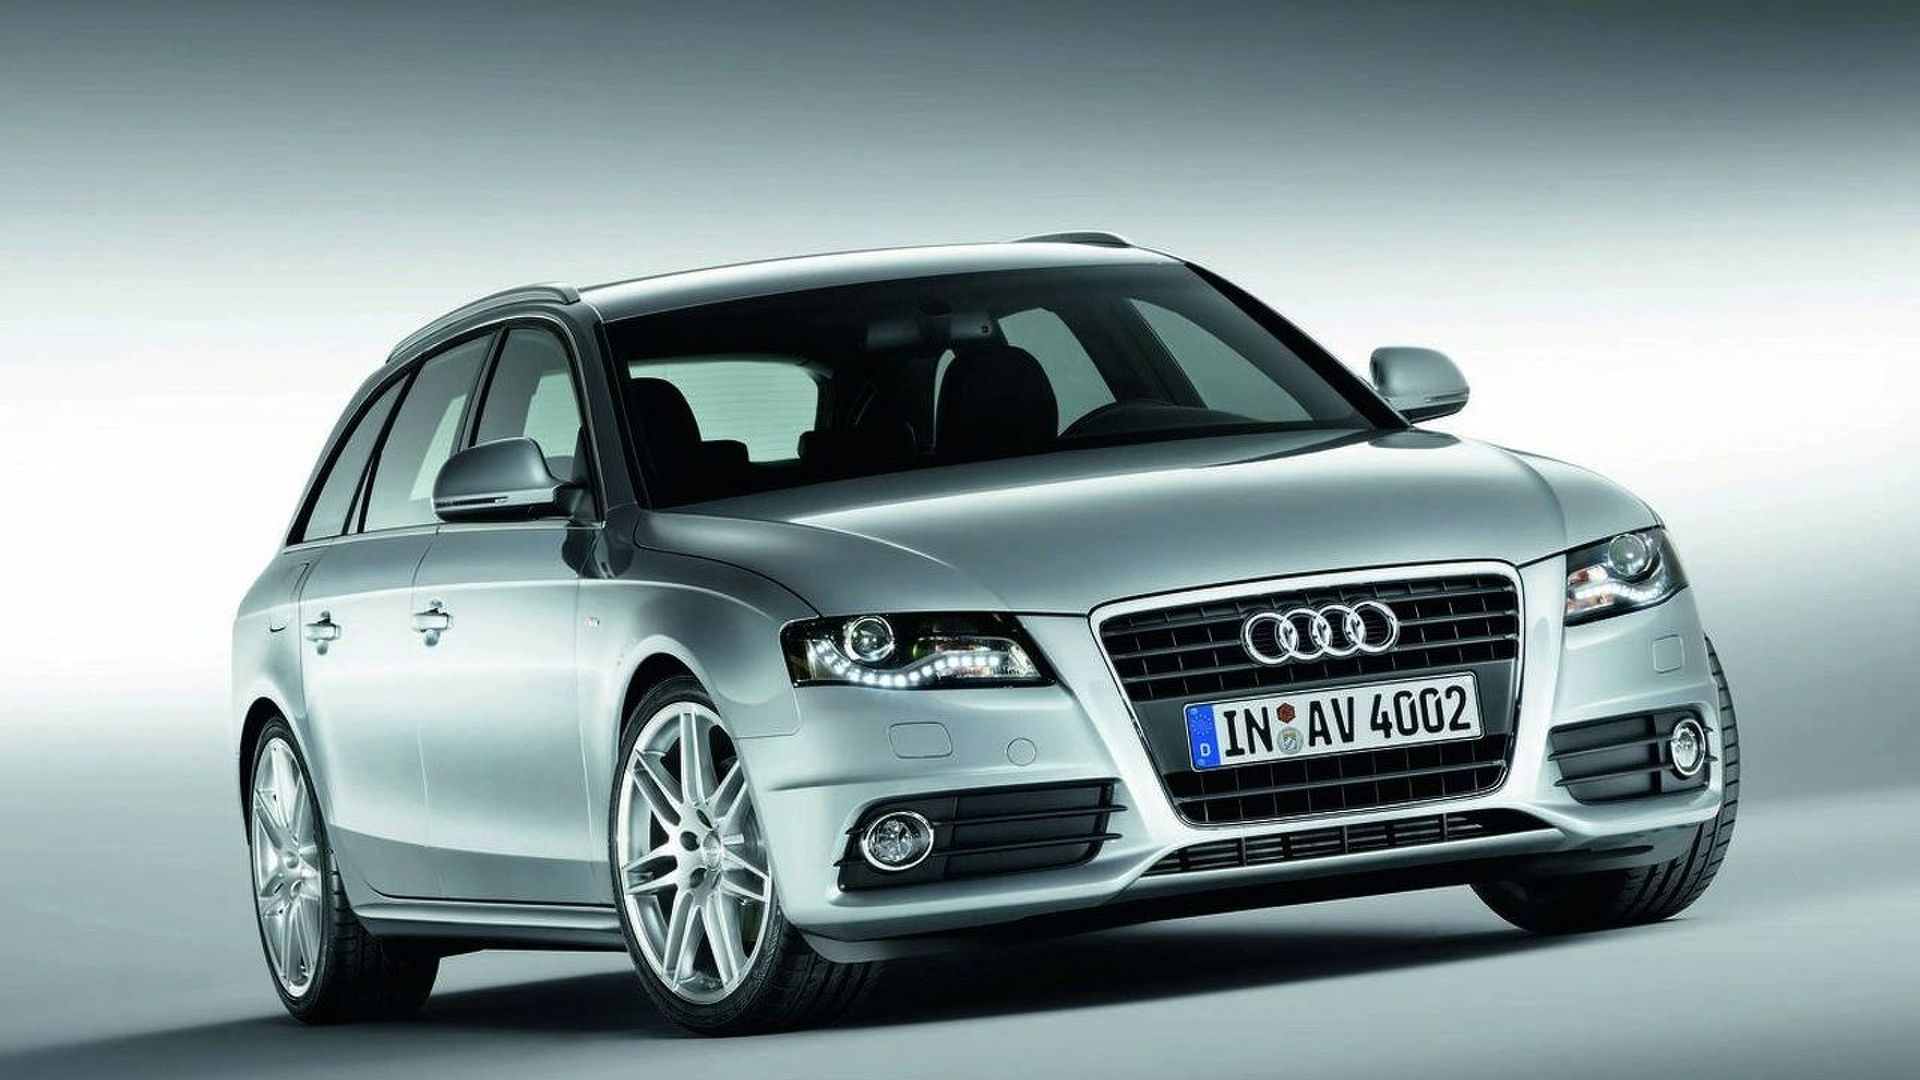 Audi A4 Superavant coming in 2016 - report